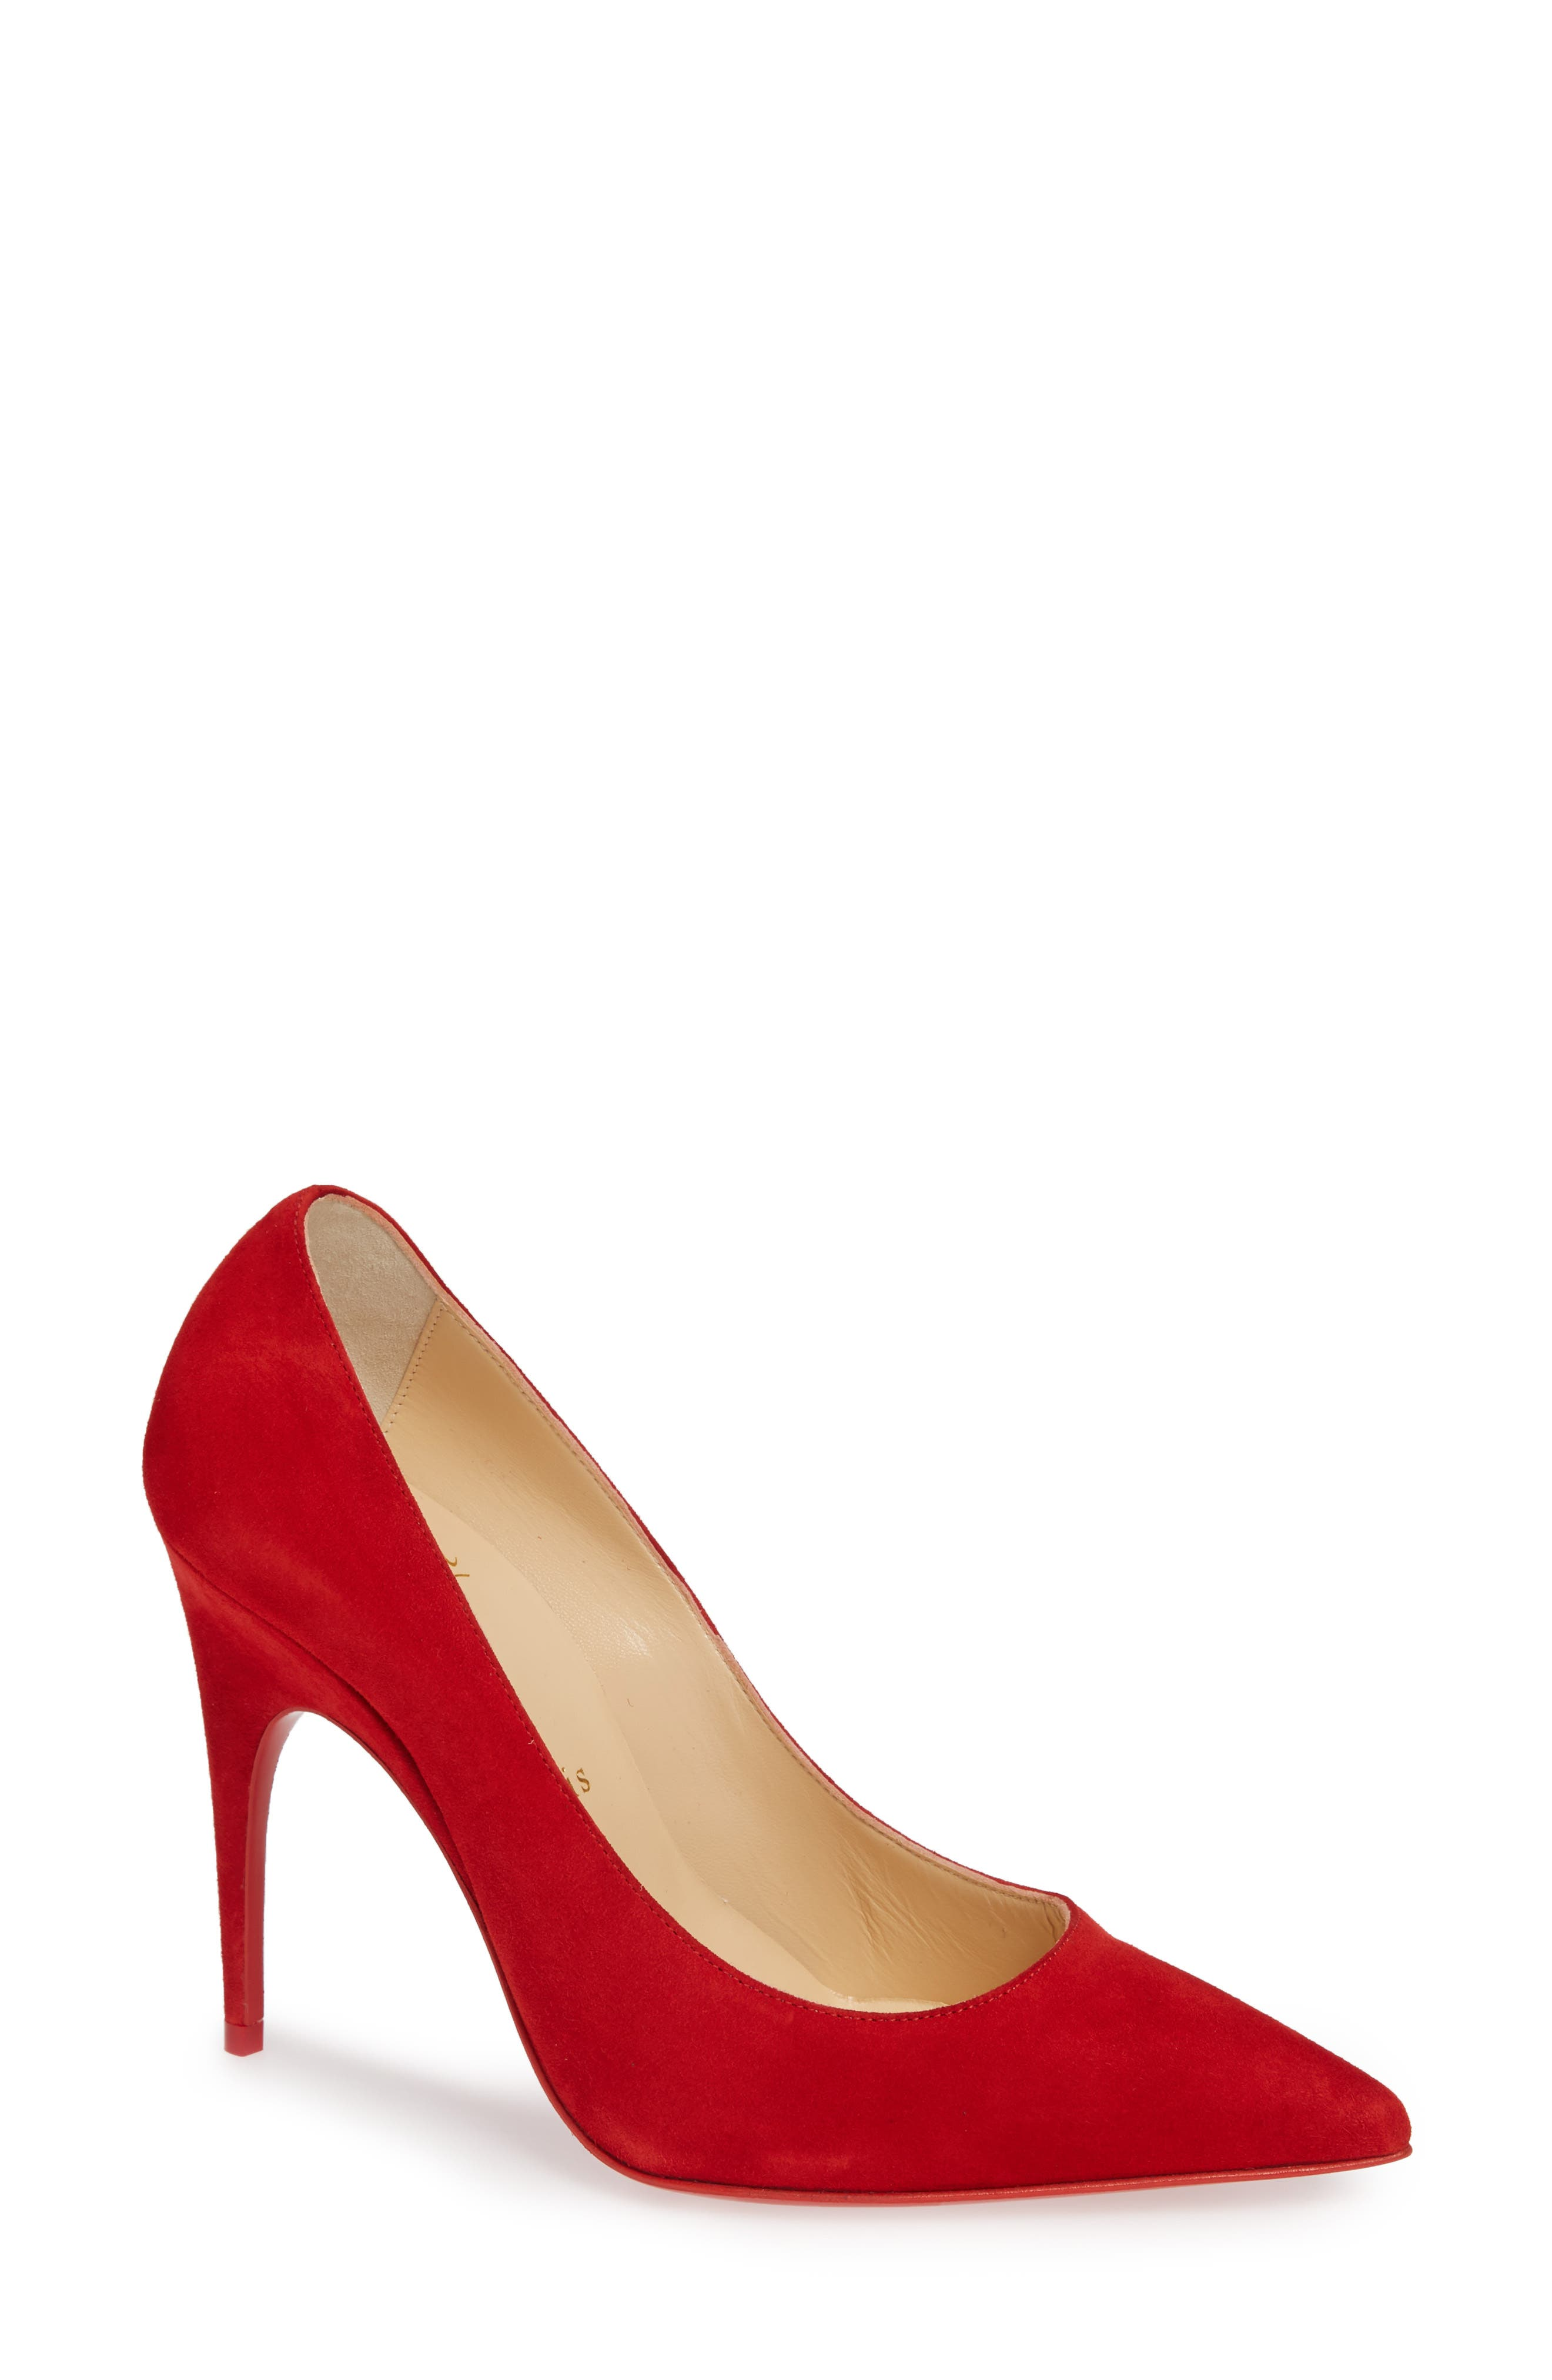 Christian Louboutin Alminette Pointy Toe Pump - Red